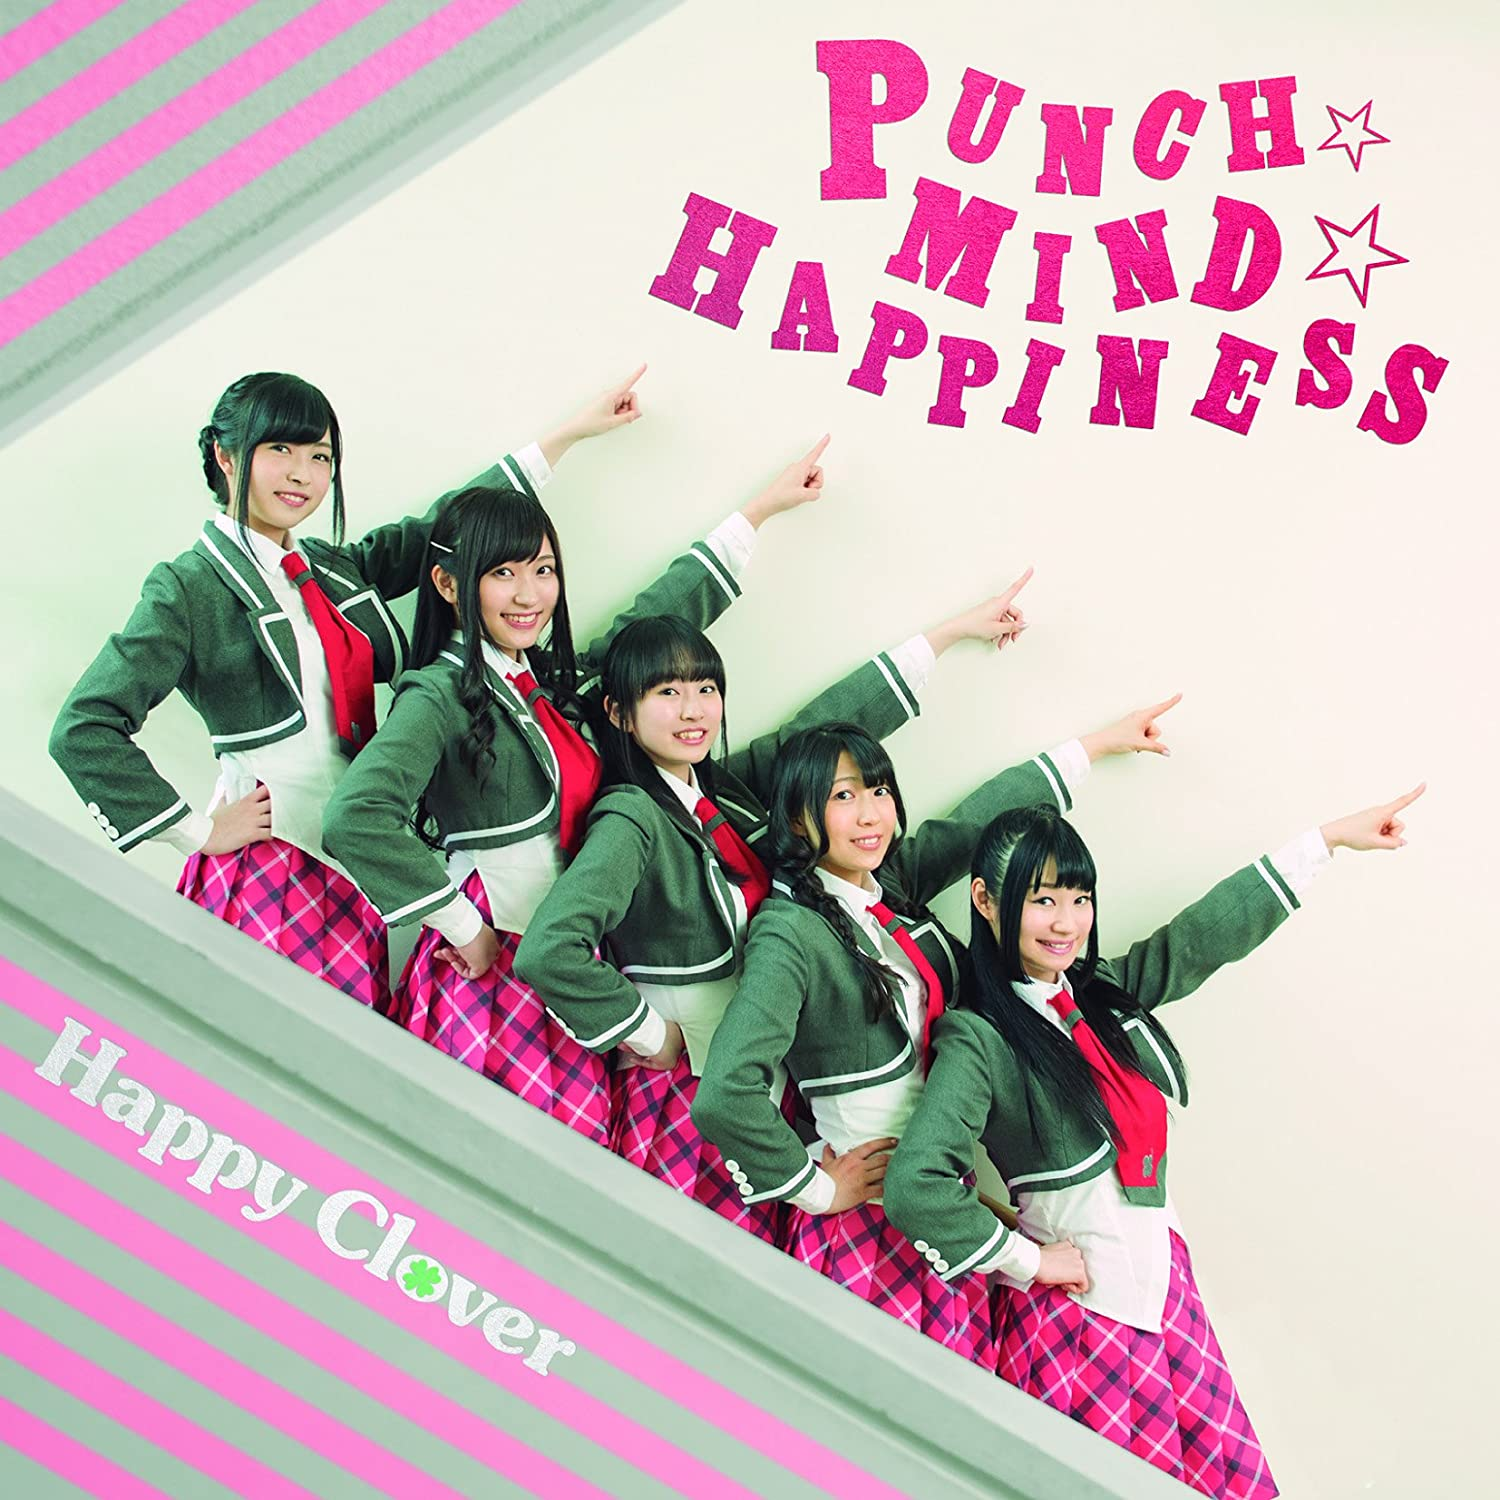 Amazon | PUNCH☆MIND☆HAPPINESS ...